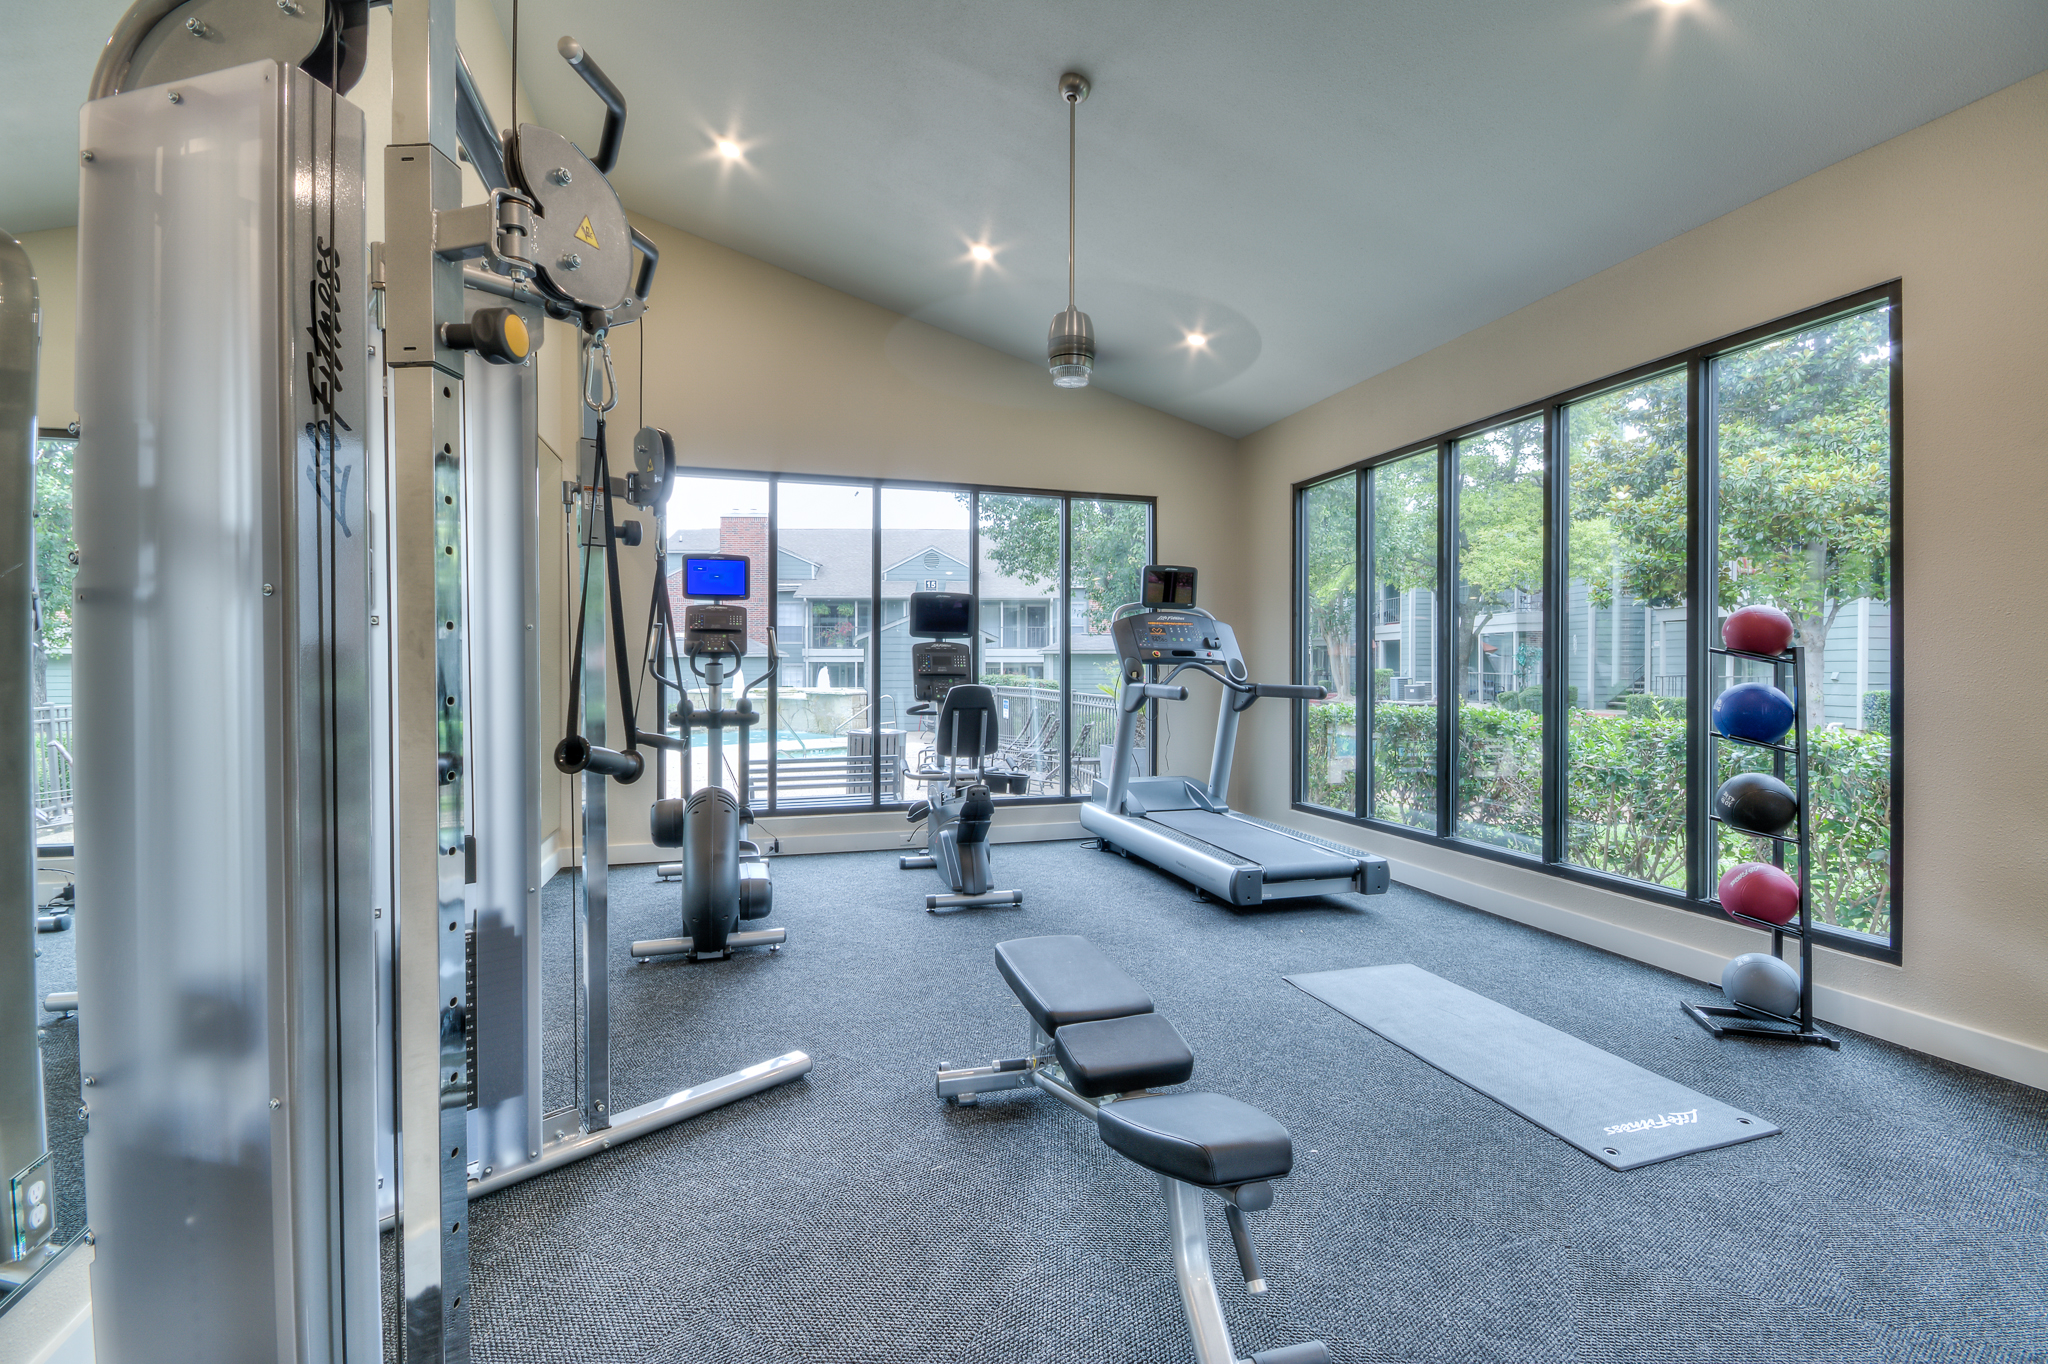 Fitness center design for Bradford Point apartments in Austin, TX